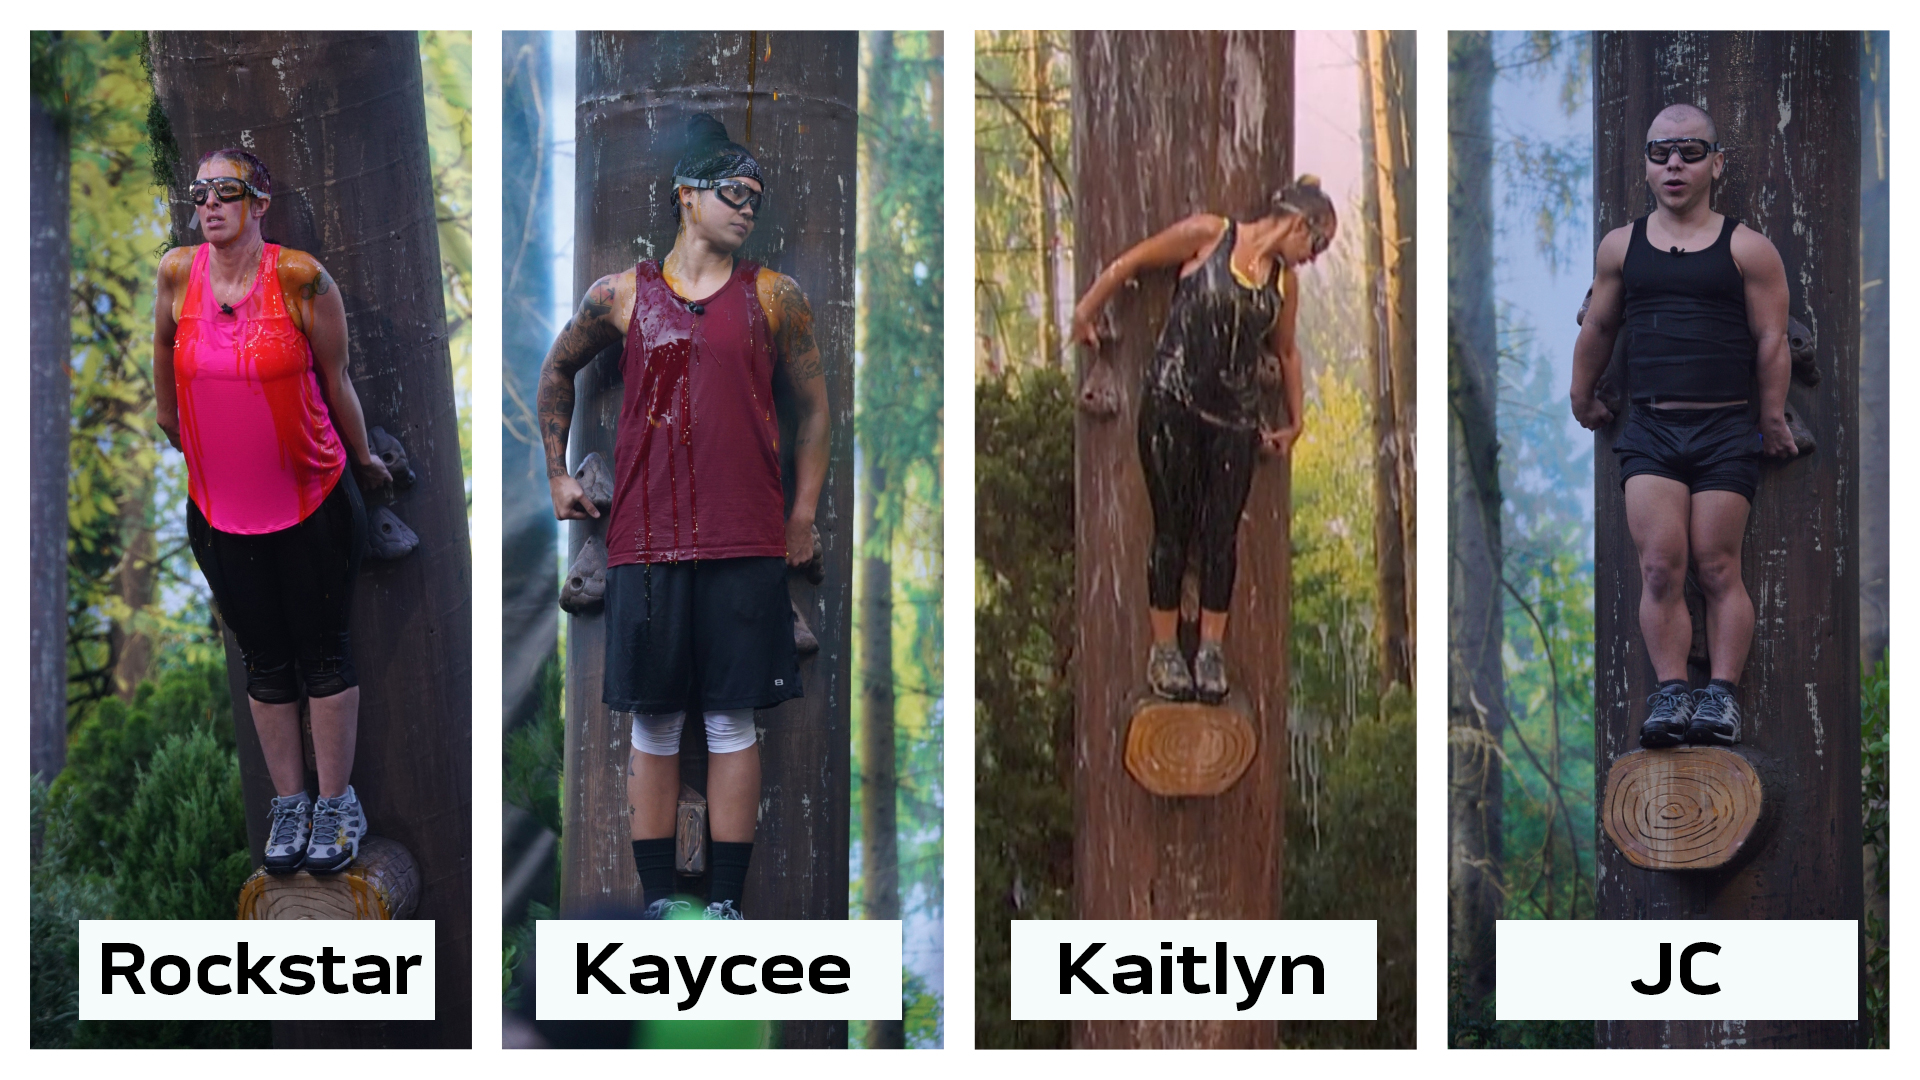 Who was the first person to fall off their log in the